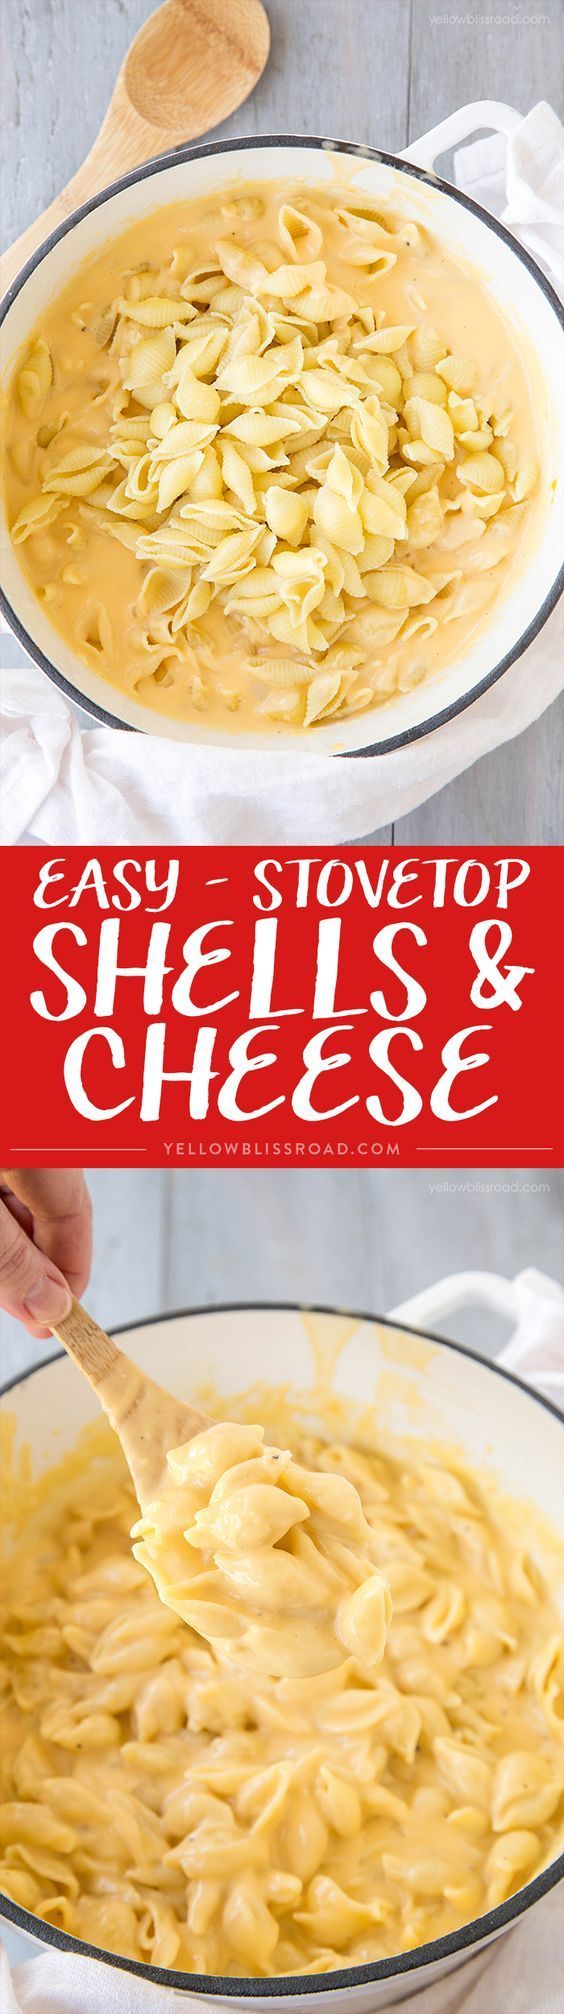 Easy, Cheesy Stovetop Shells & Cheese - The best Macaroni & Cheese Recipe that will make you ditch the blue box forever!